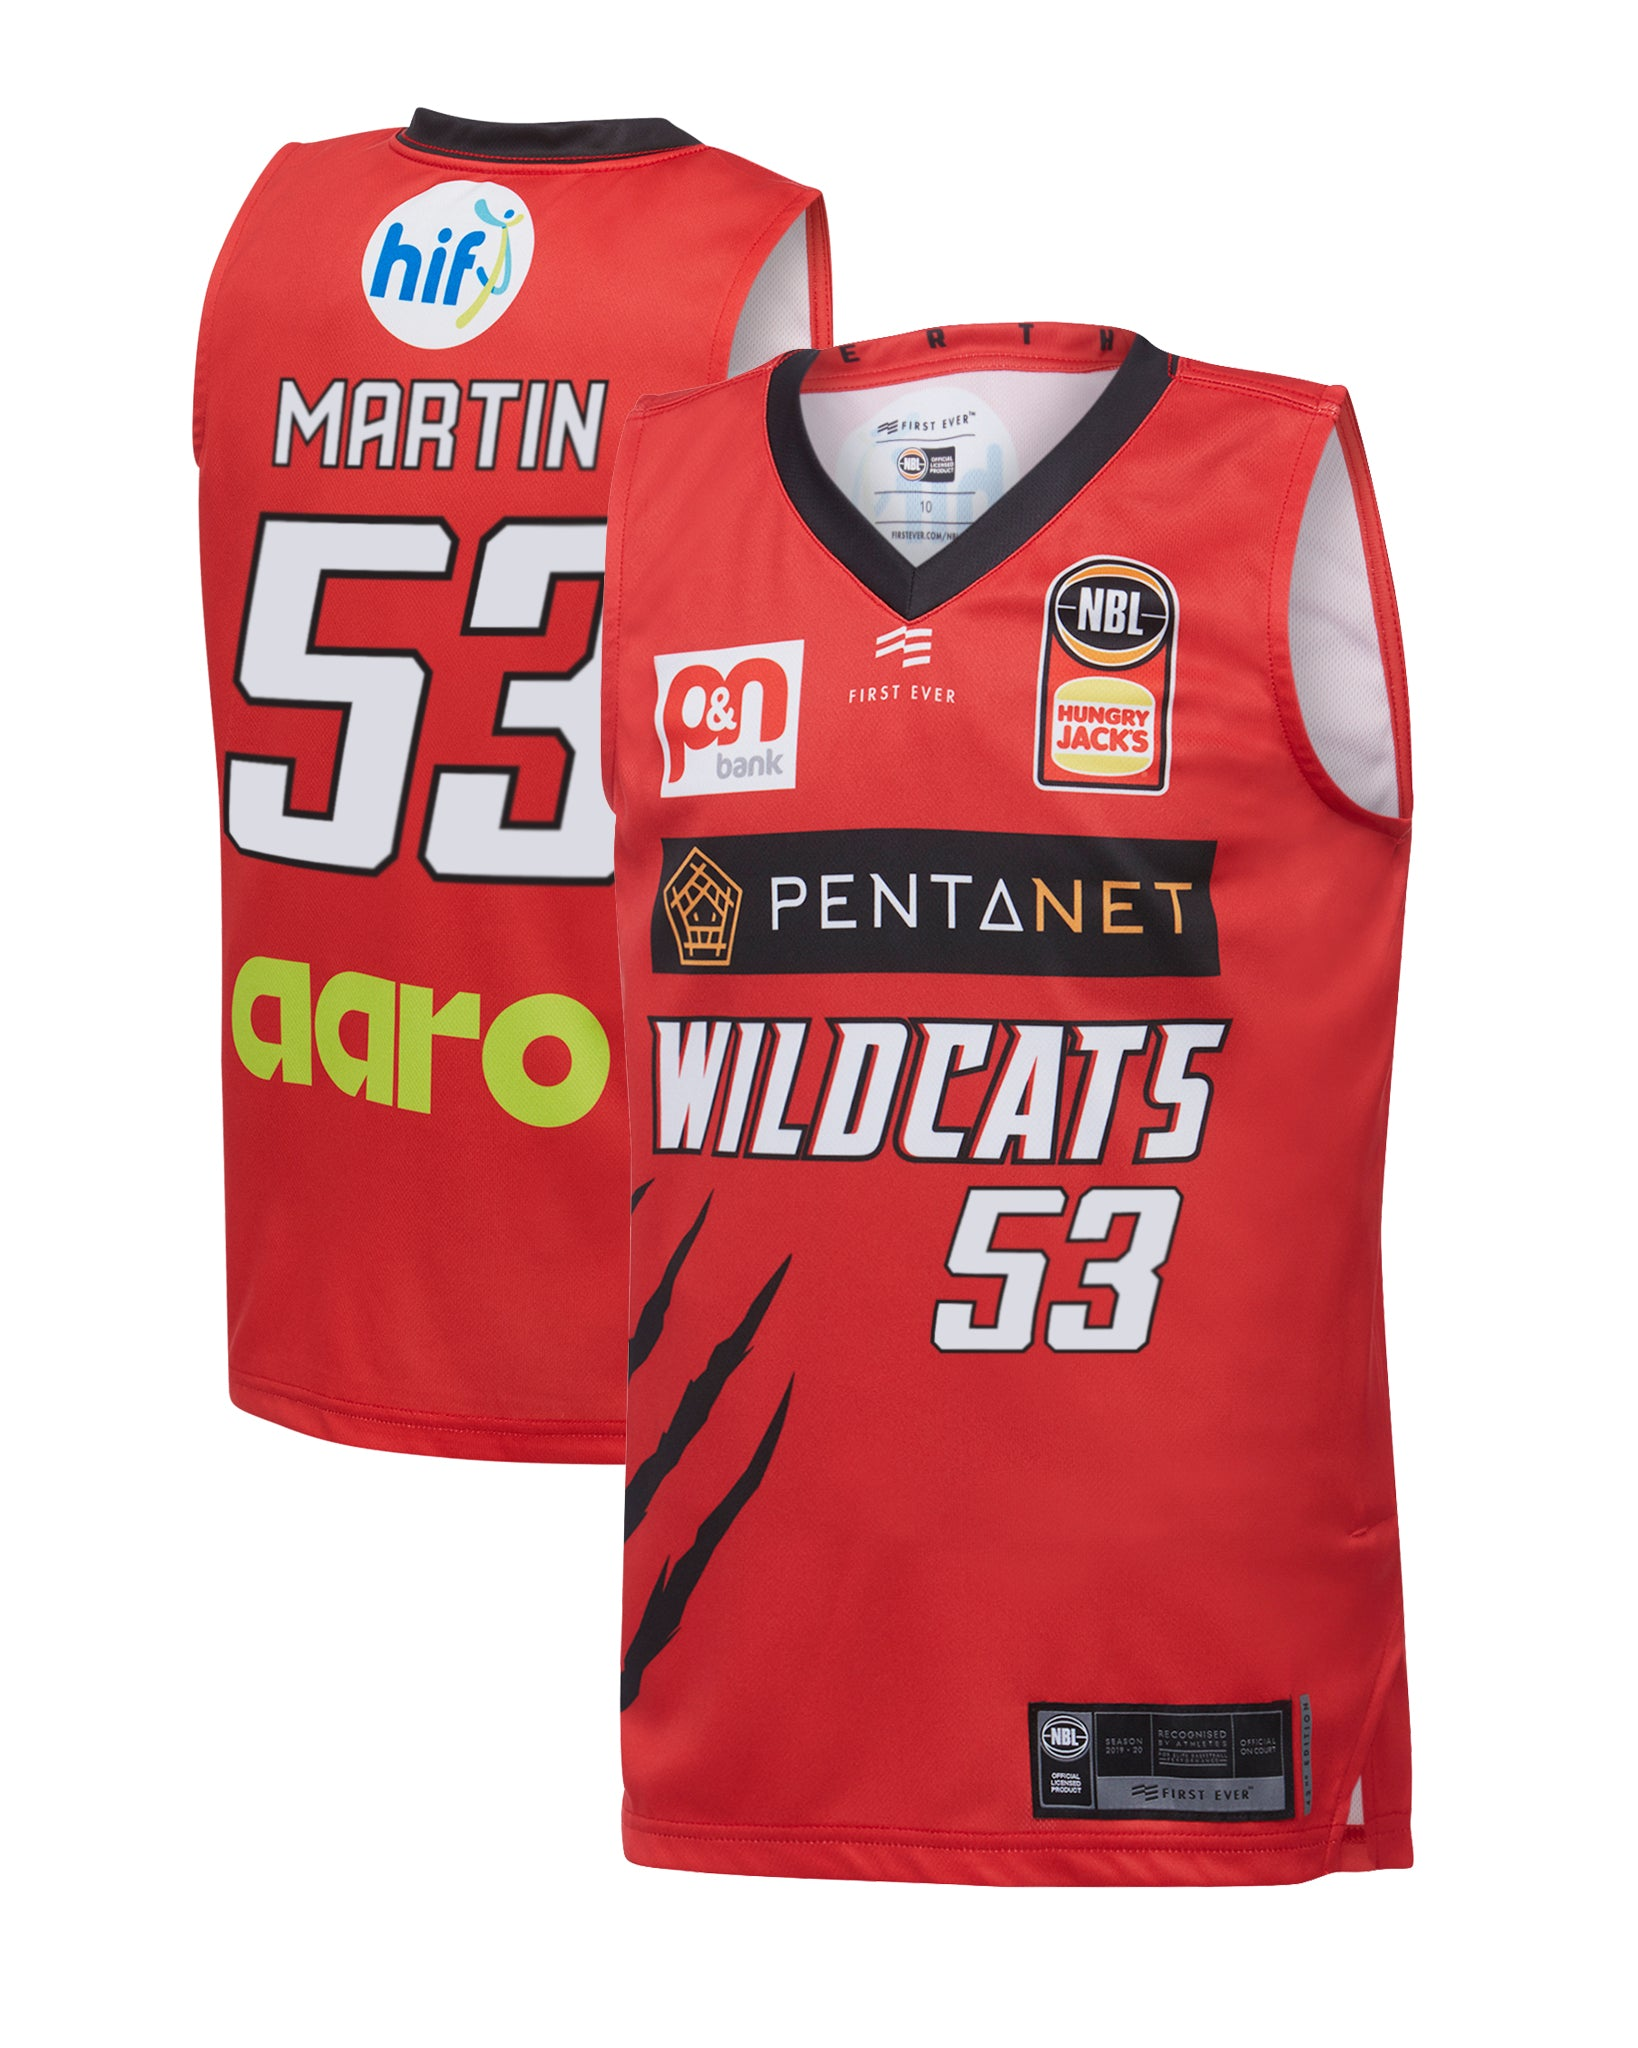 Perth Wildcats 19/20 Youth Authentic Home Jersey - Damian Martin